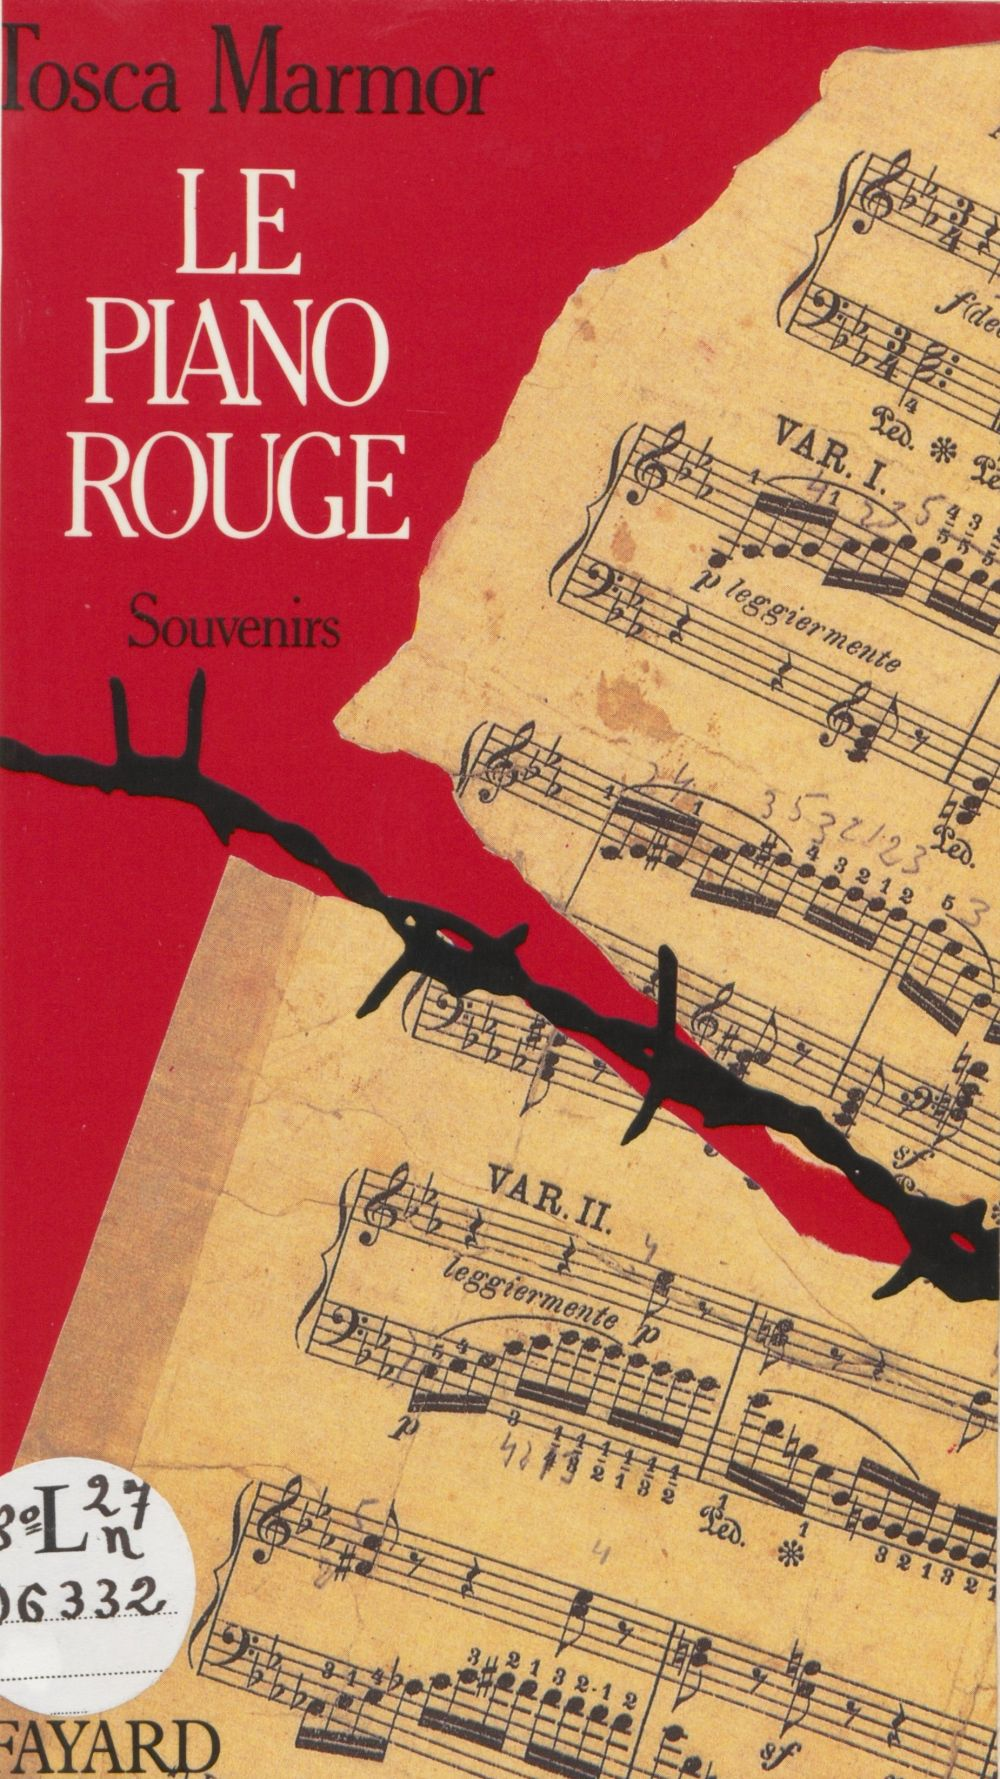 Le piano rouge